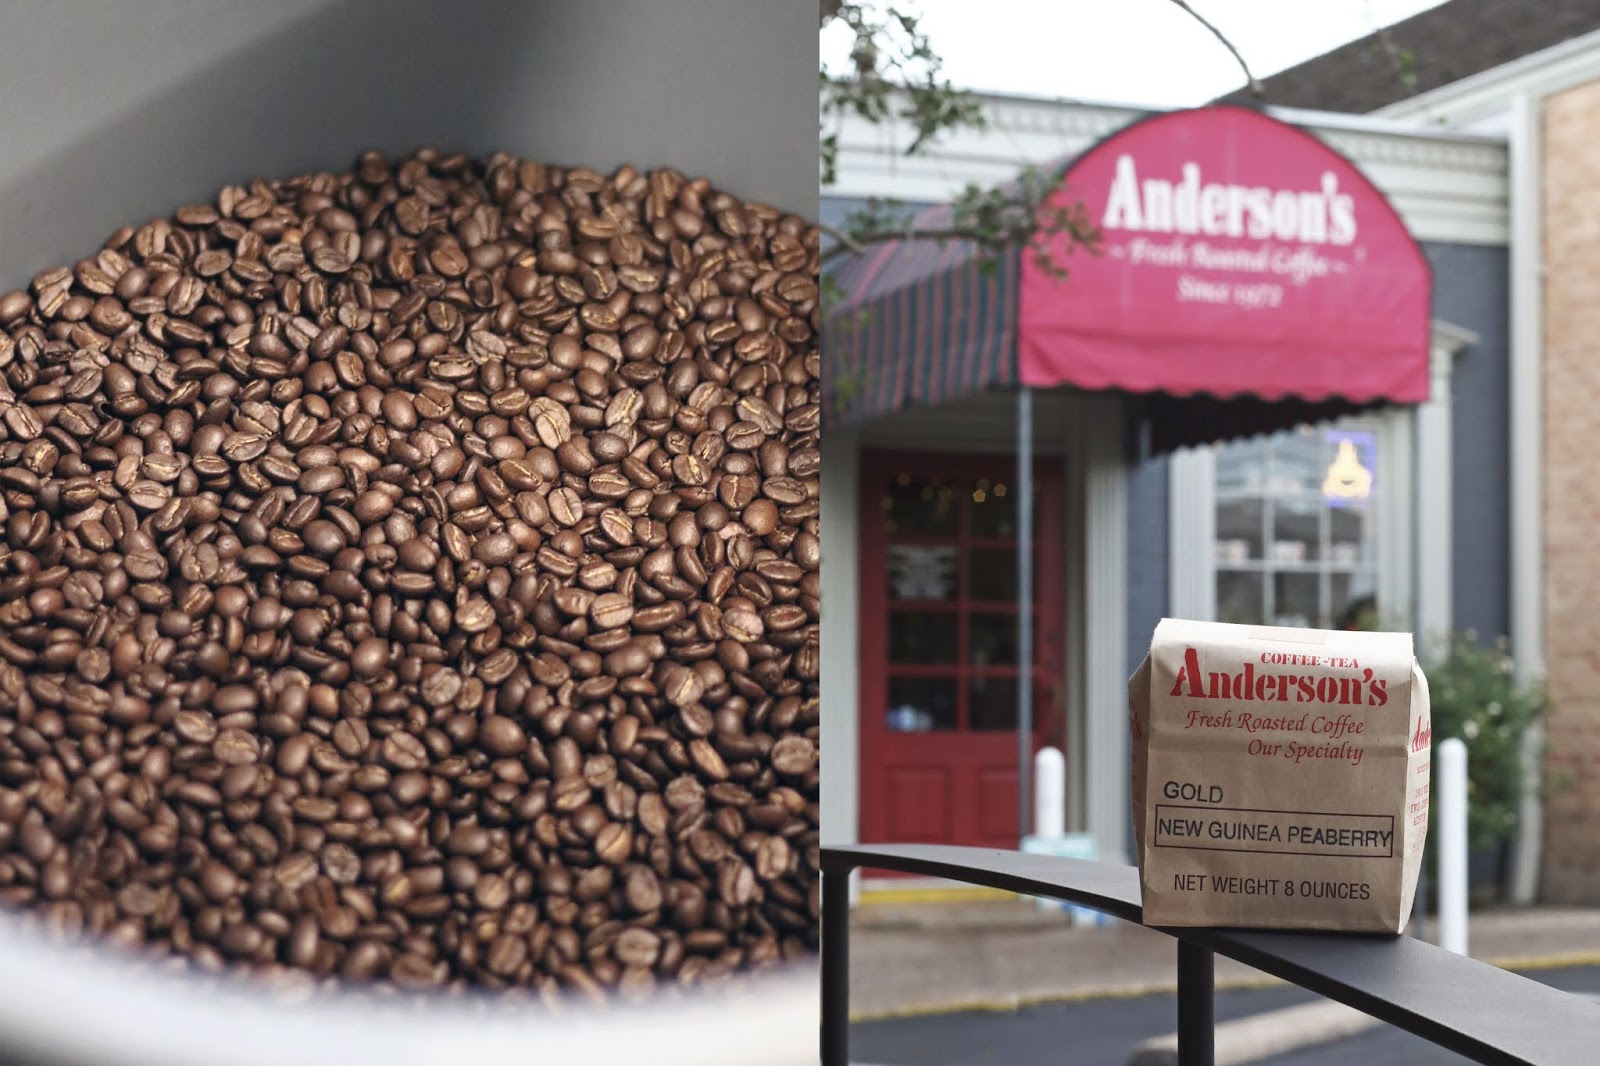 Anderson's Coffee Austin, Iced Coffee, Cozy Coffee Shop, Coffee Shops Vibe